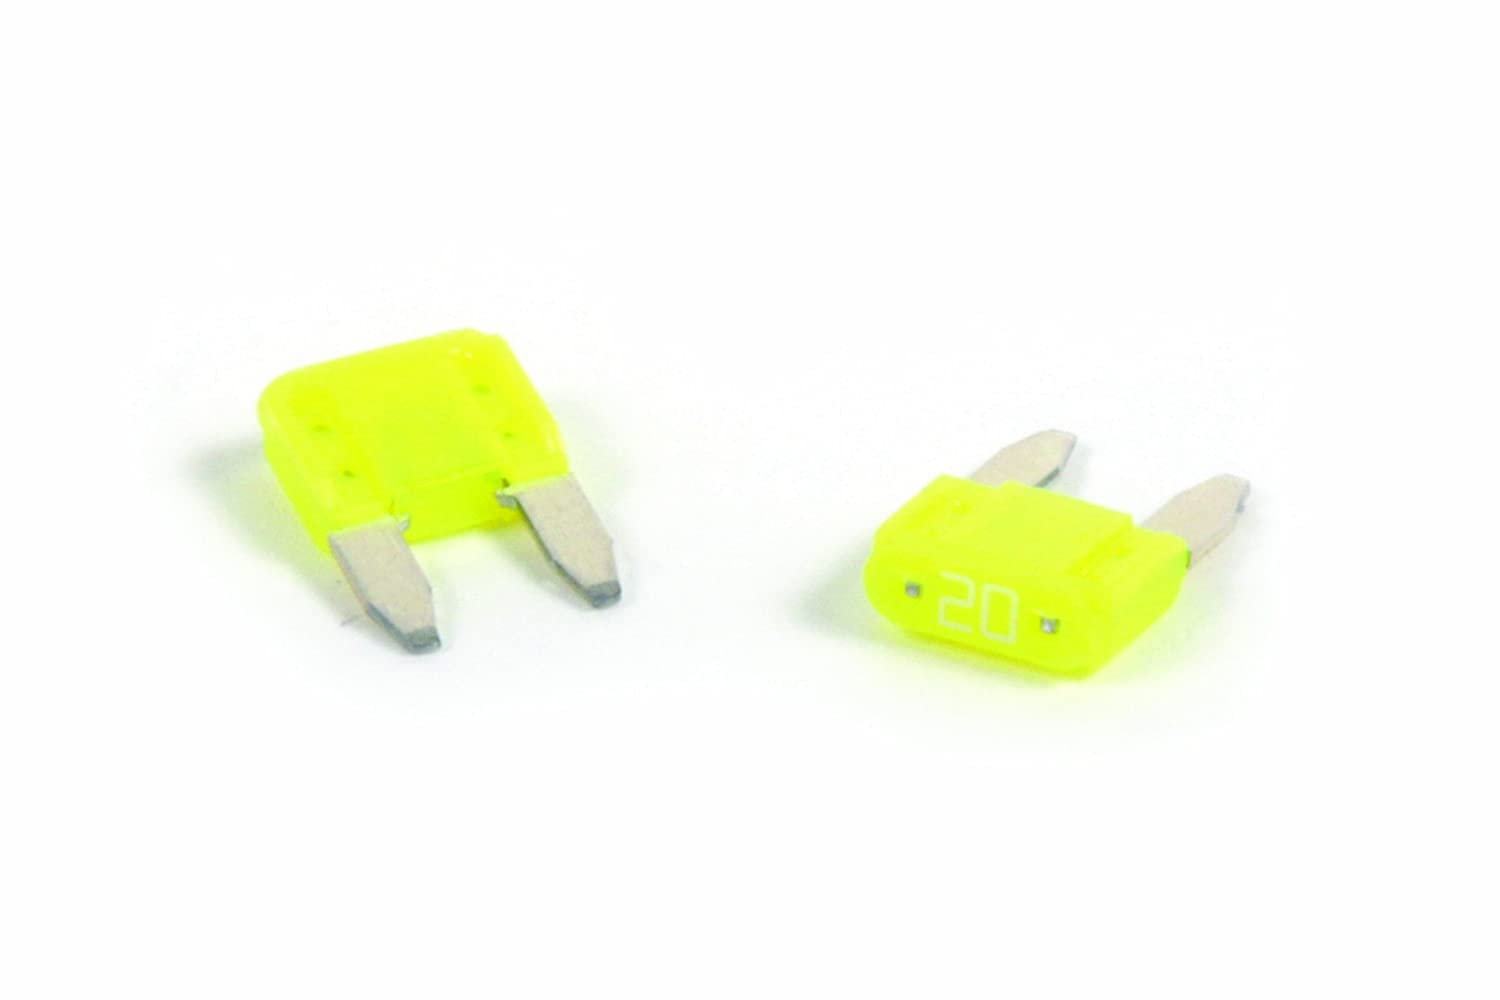 Camco 65153 Green 30 AMP Mini-Blade Fuse Pack of 2